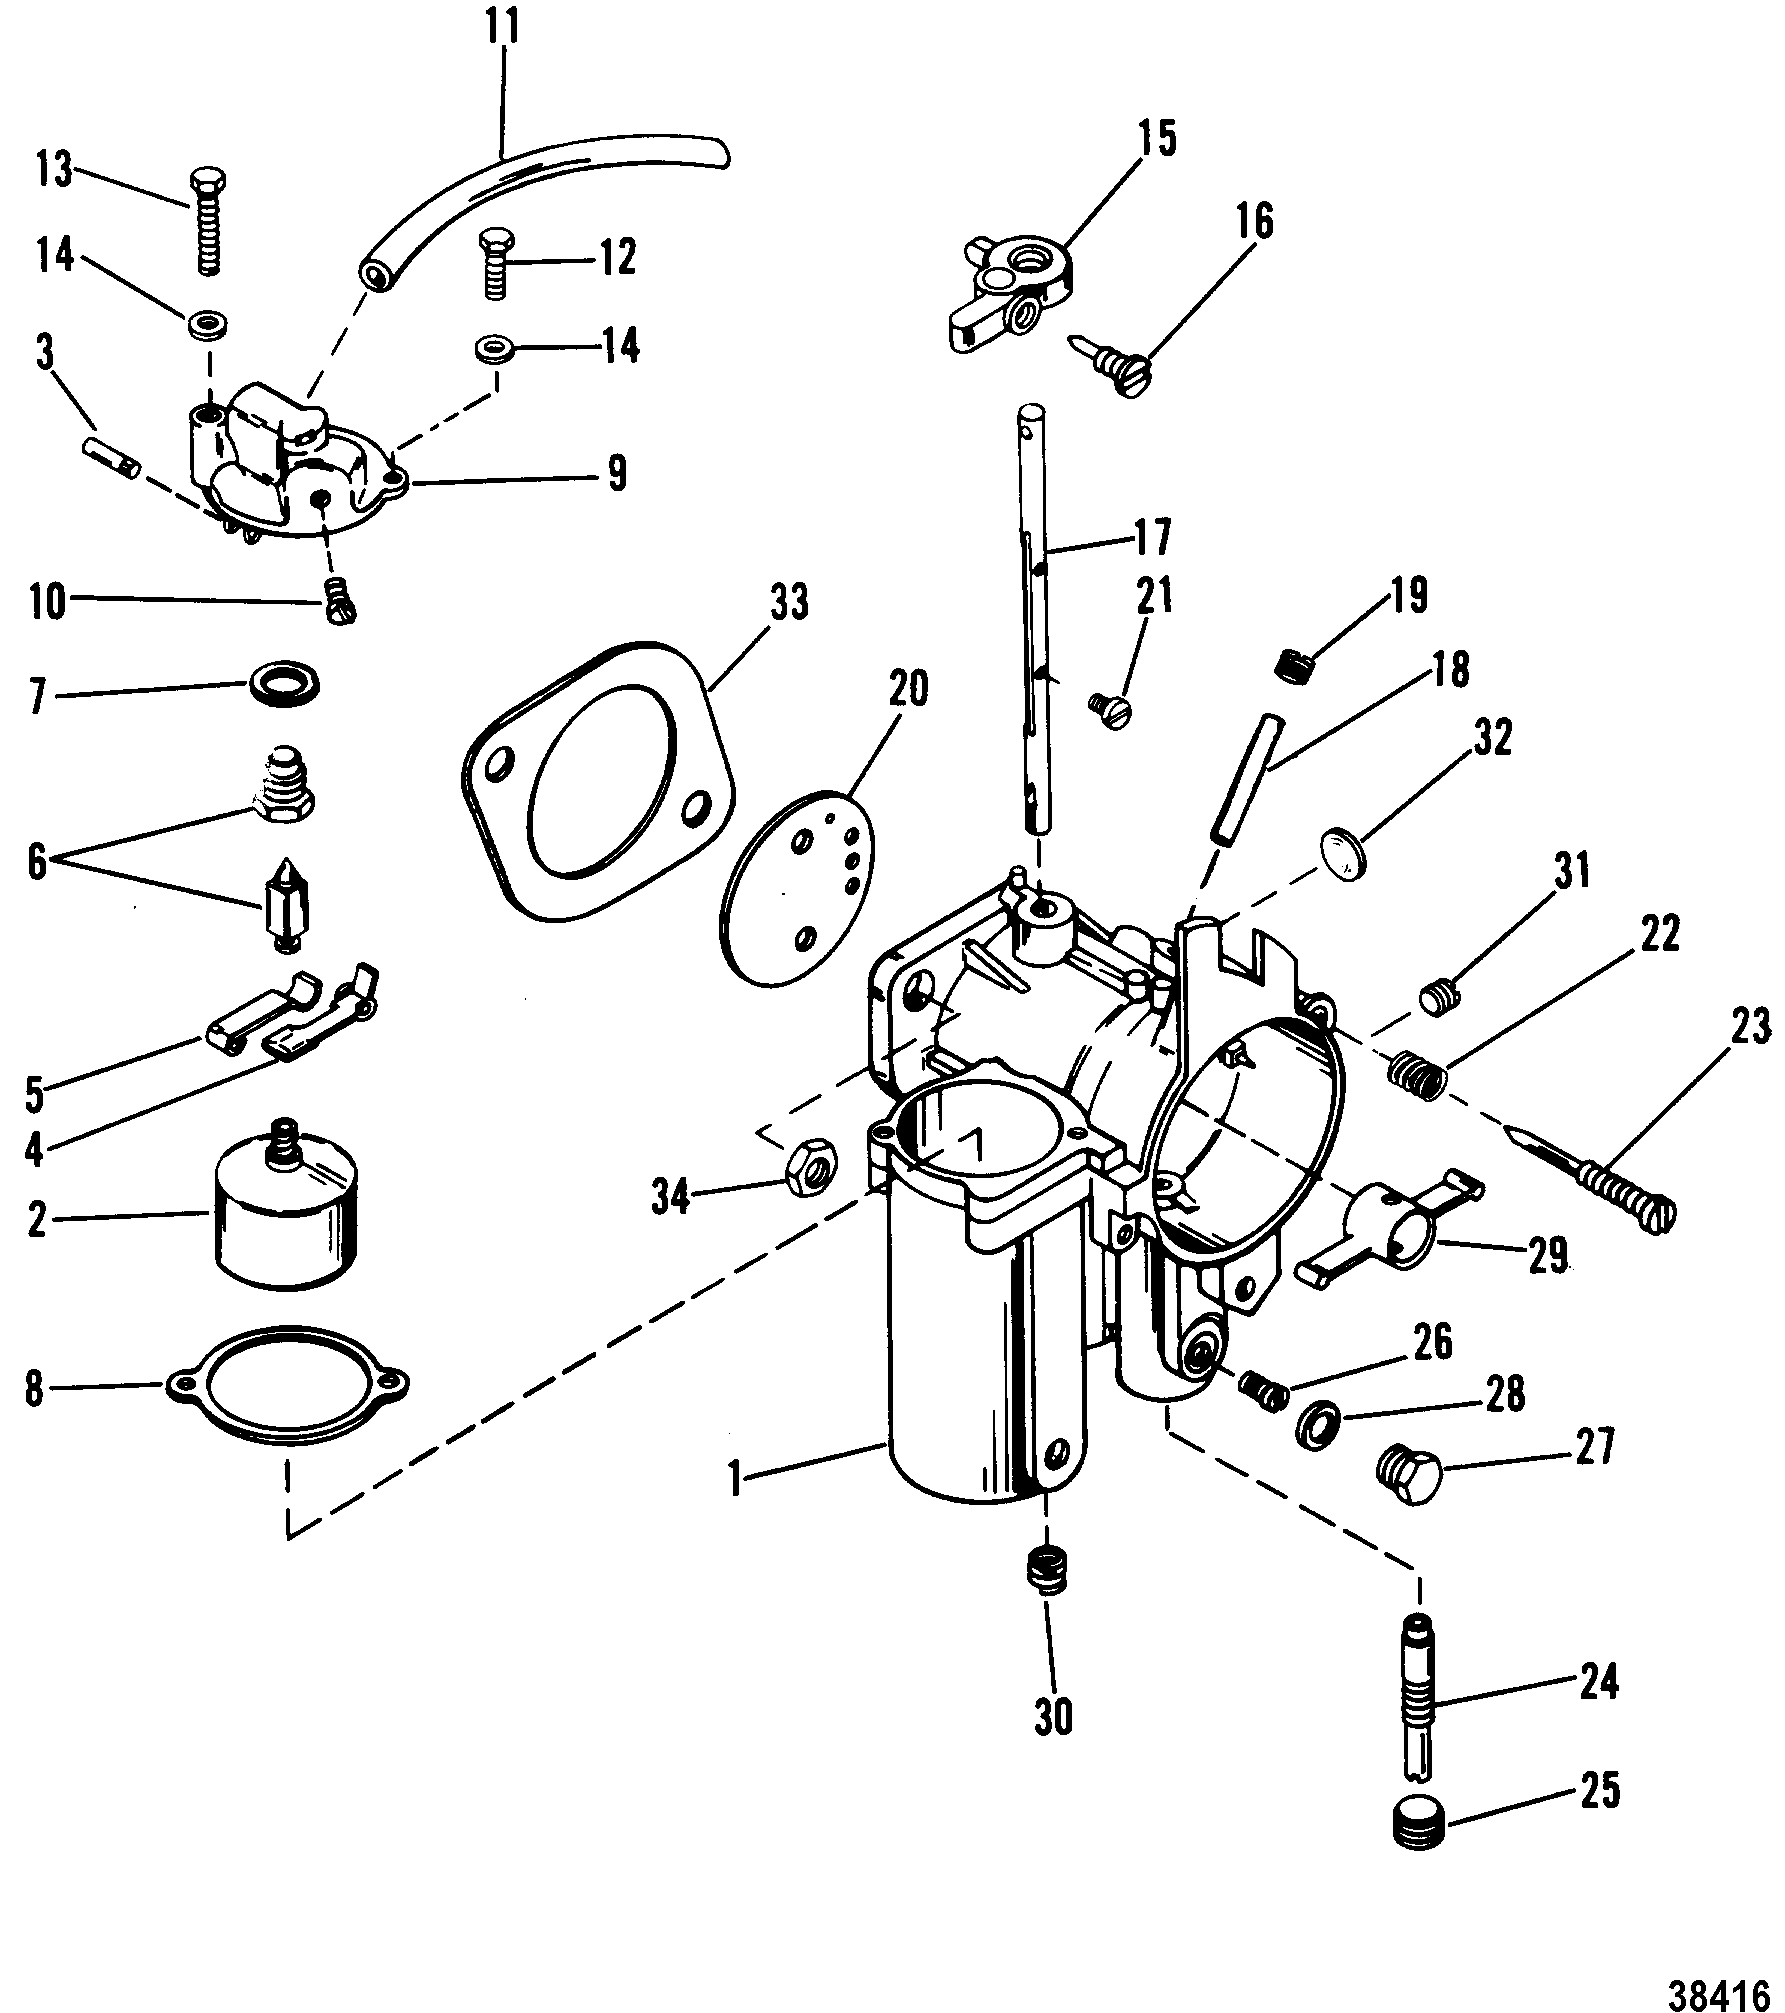 38416 carburetor for mariner mercury 90 115 h p inline 115 hp mercury outboard wiring diagram at readyjetset.co